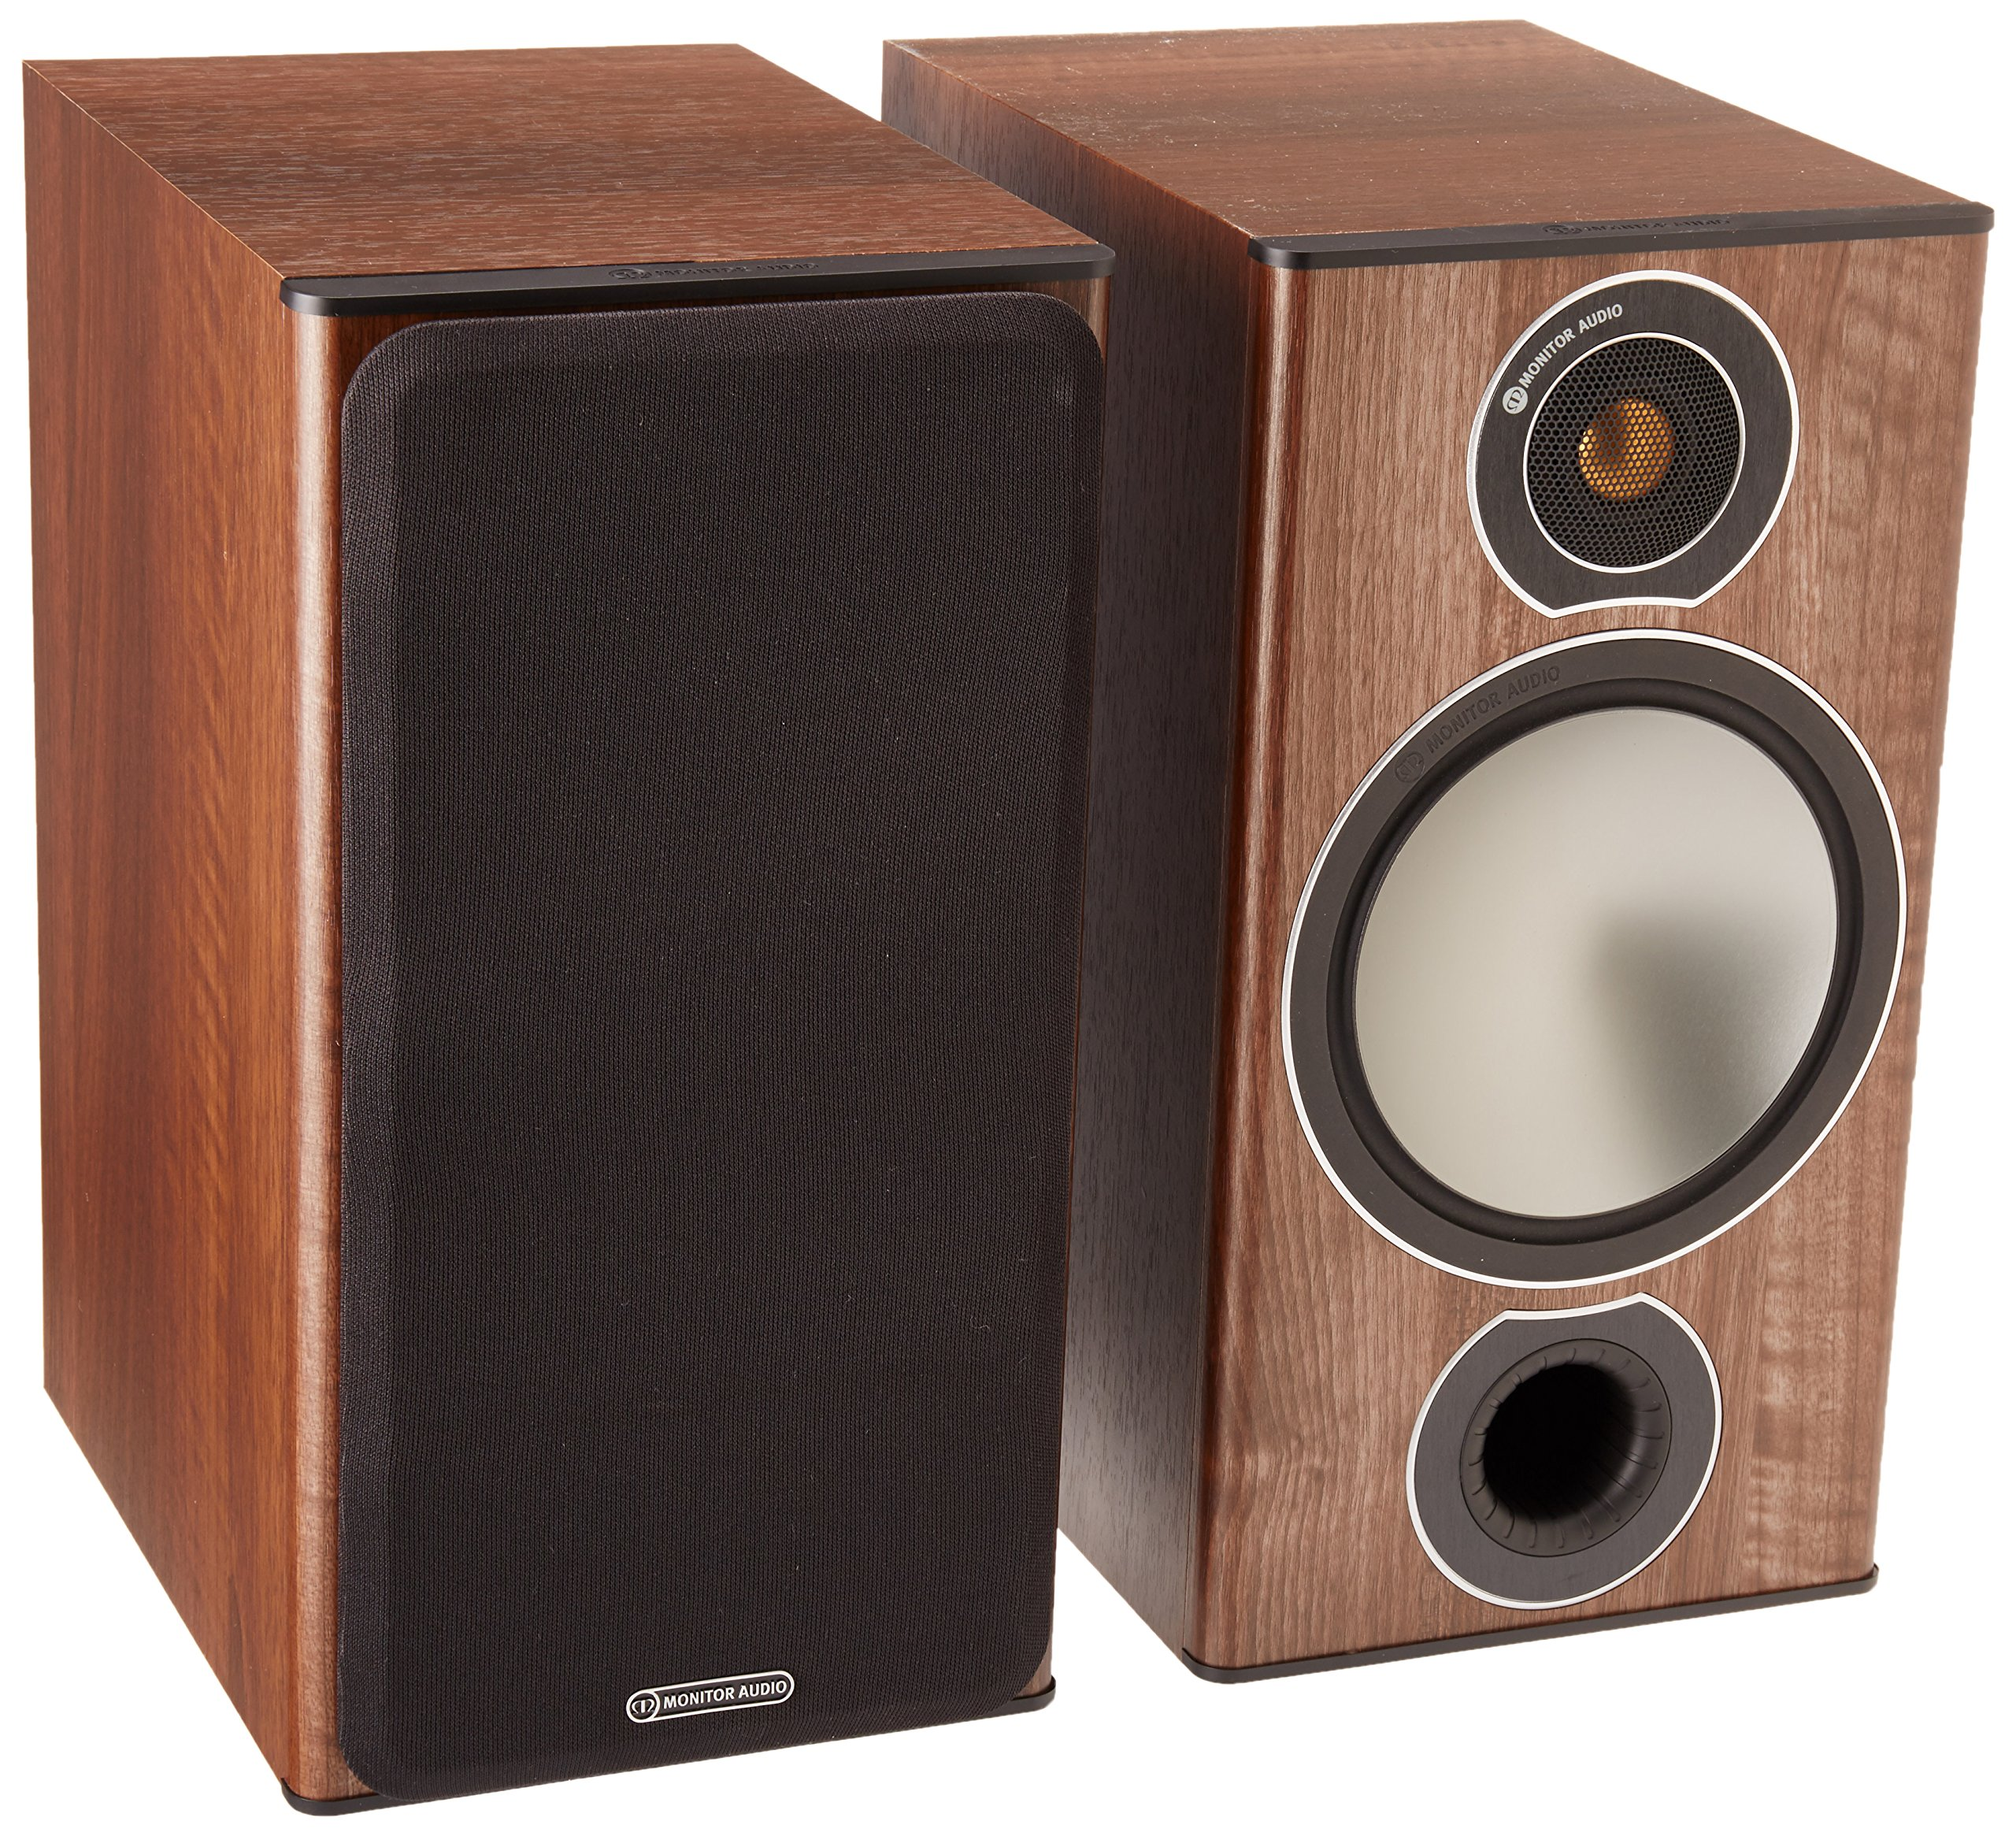 Parlante : Monitor Audio Bronze 2 Bookshelf Speakers